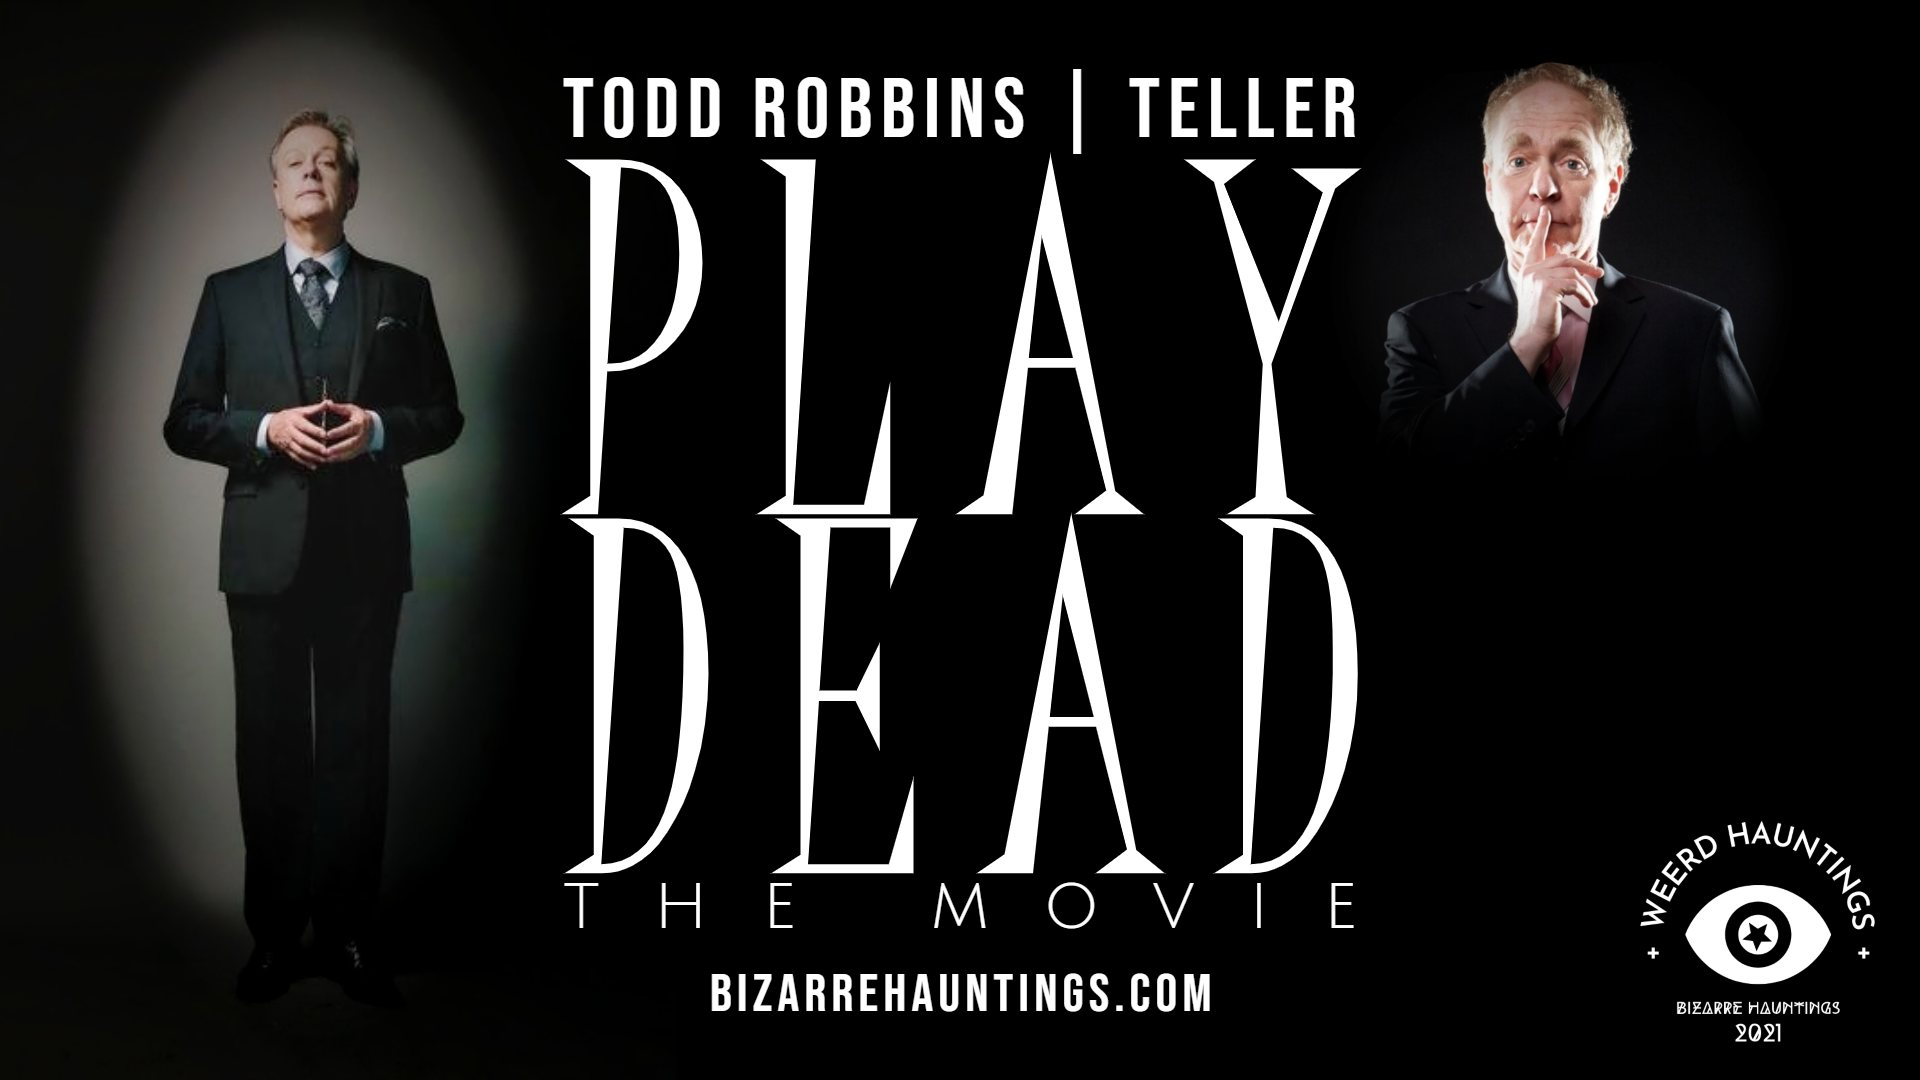 todd and teller (1)